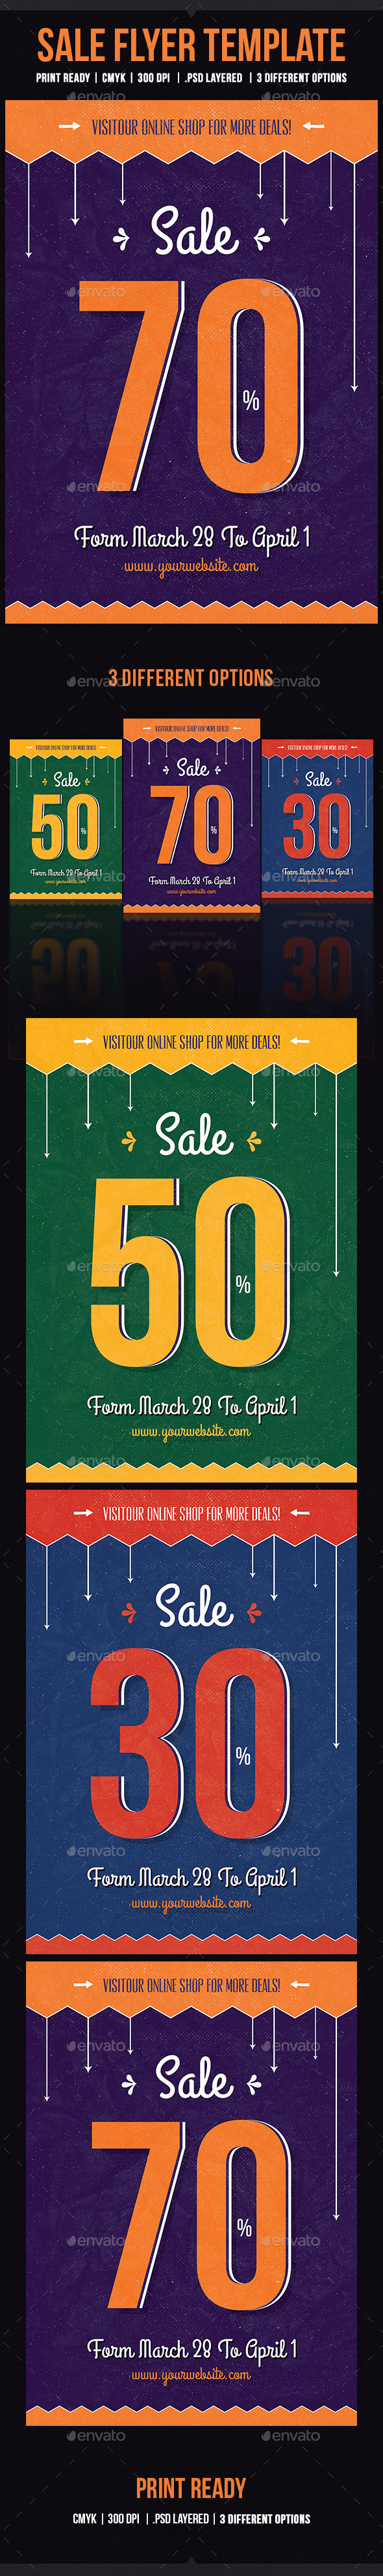 GraphicRiver Sale Flyer Template 10865517